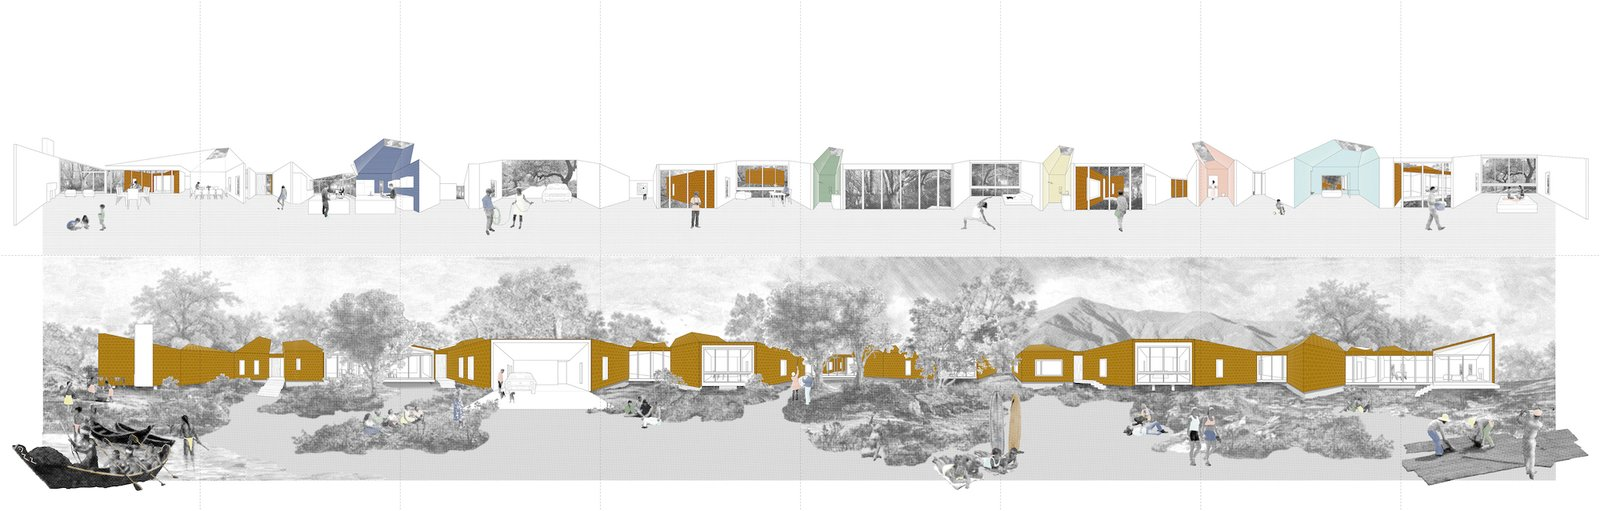 Diagram of Branch House by TOLO Architecture